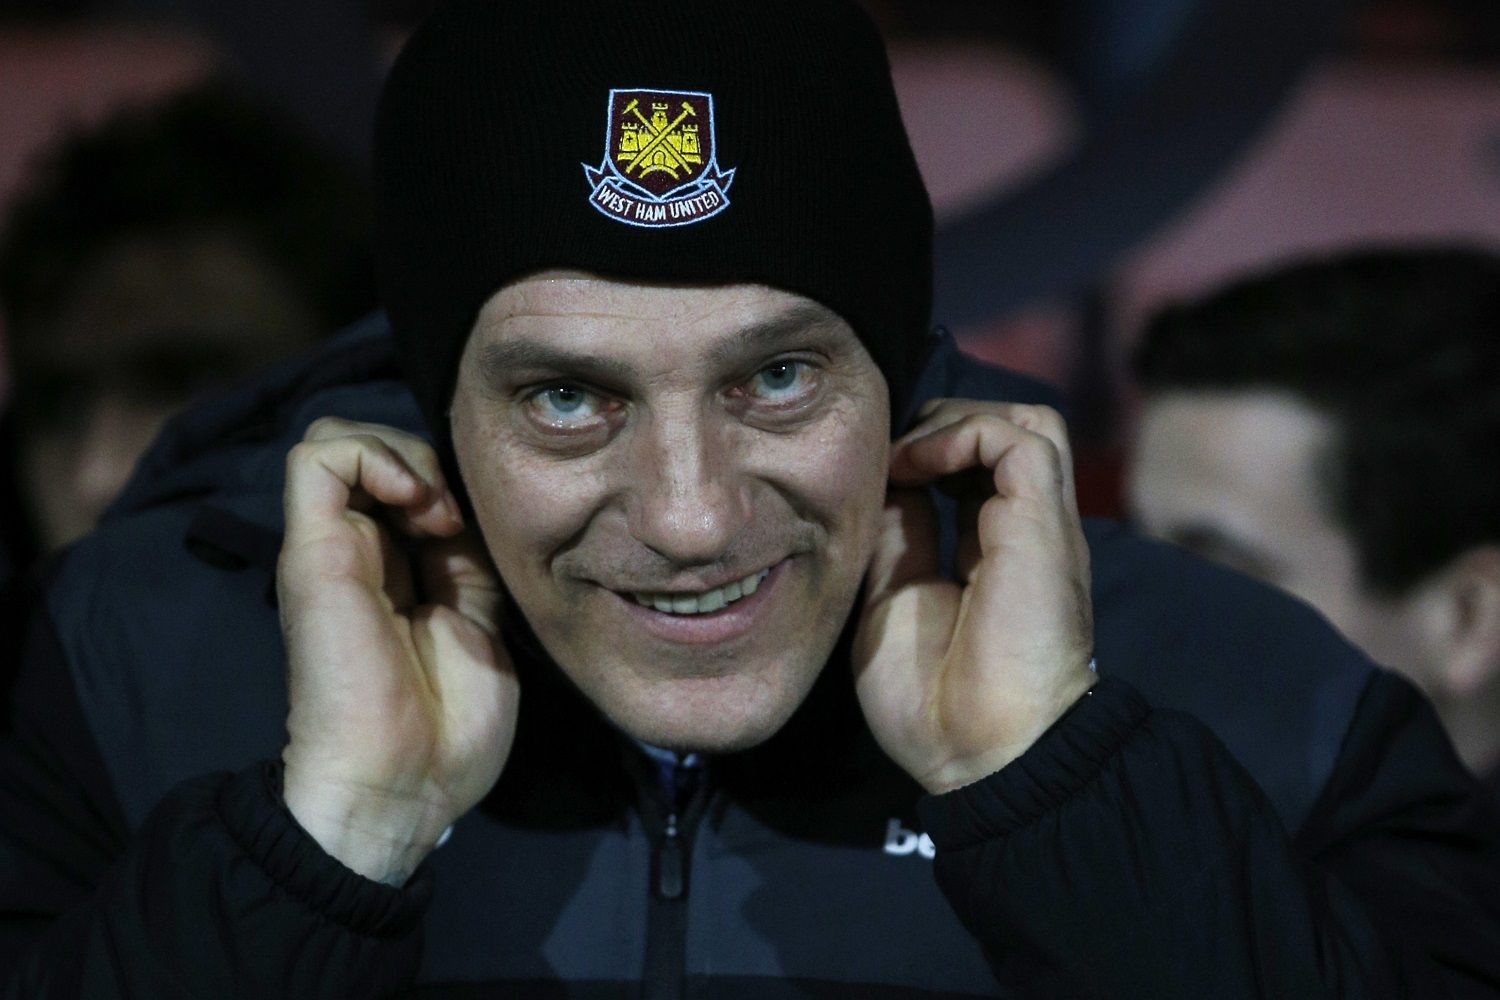 Slaven bilic on west hams champions league chances approach a slaven bilic on west hams champions league chances approach a girl in a nightclub thinking youll fail and you have no chance ccuart Gallery